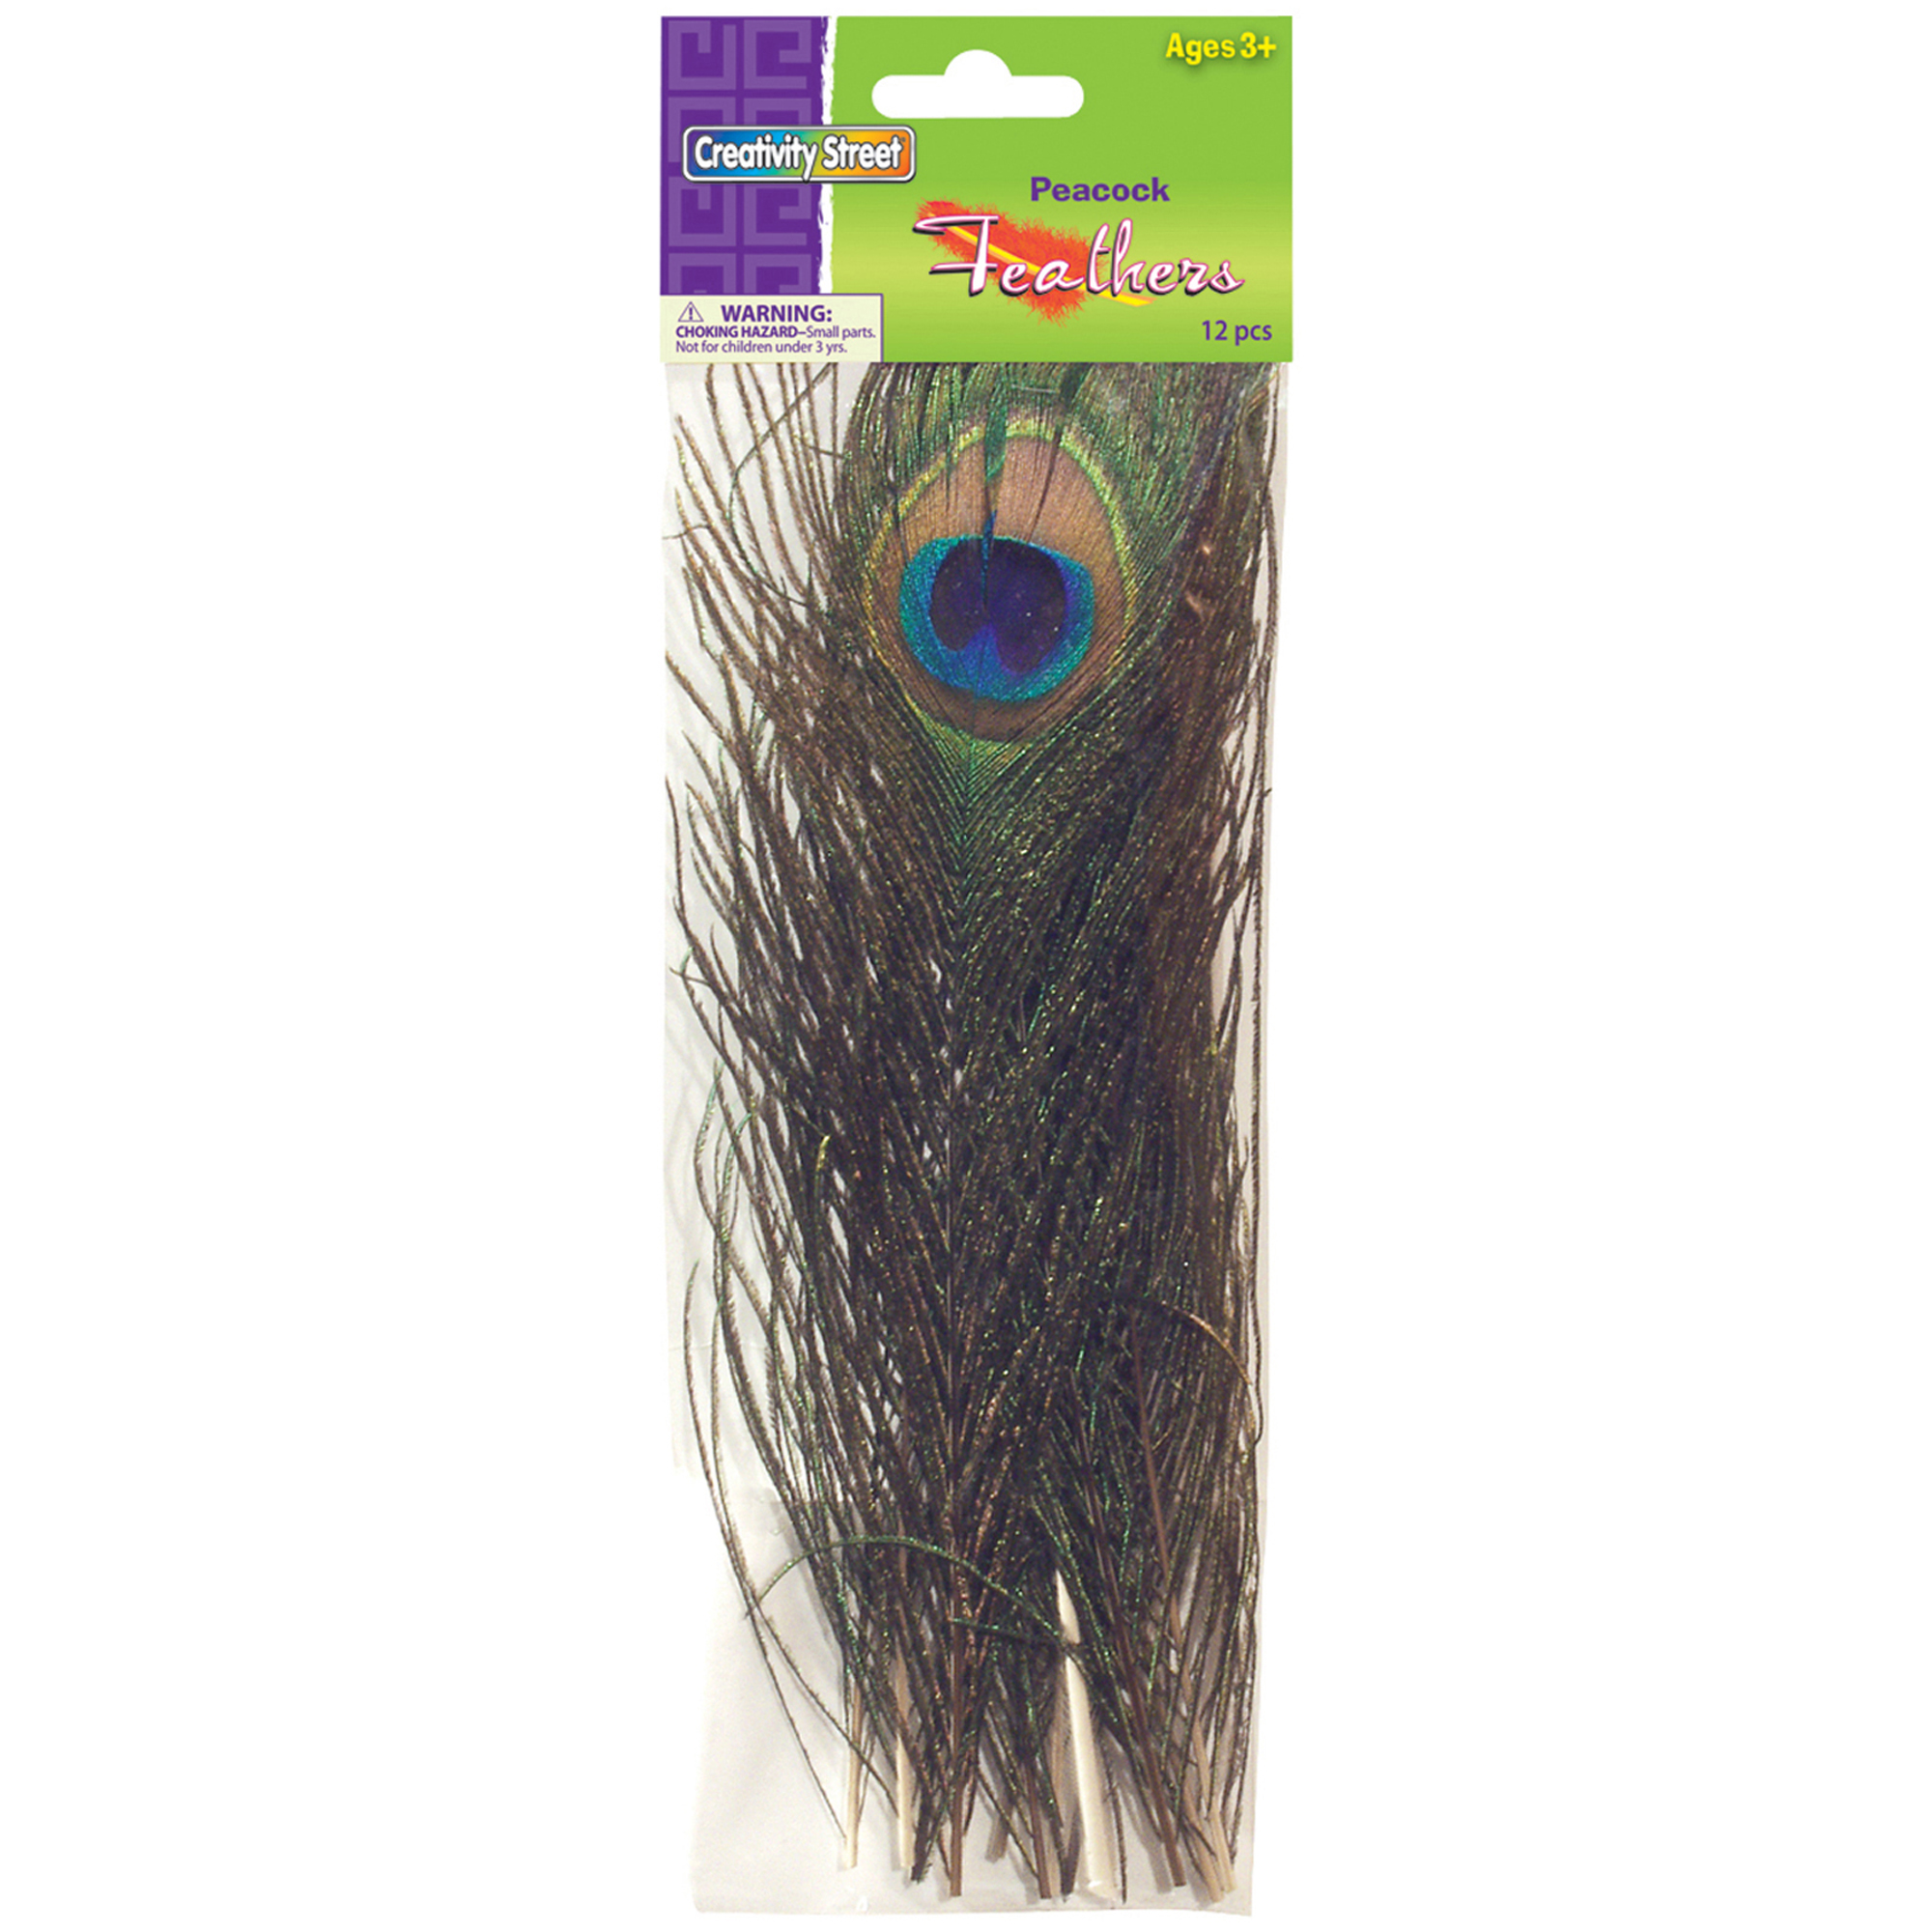 8 Deep Green Peacock Feather Make /& Fill Your Own Crackers Kit